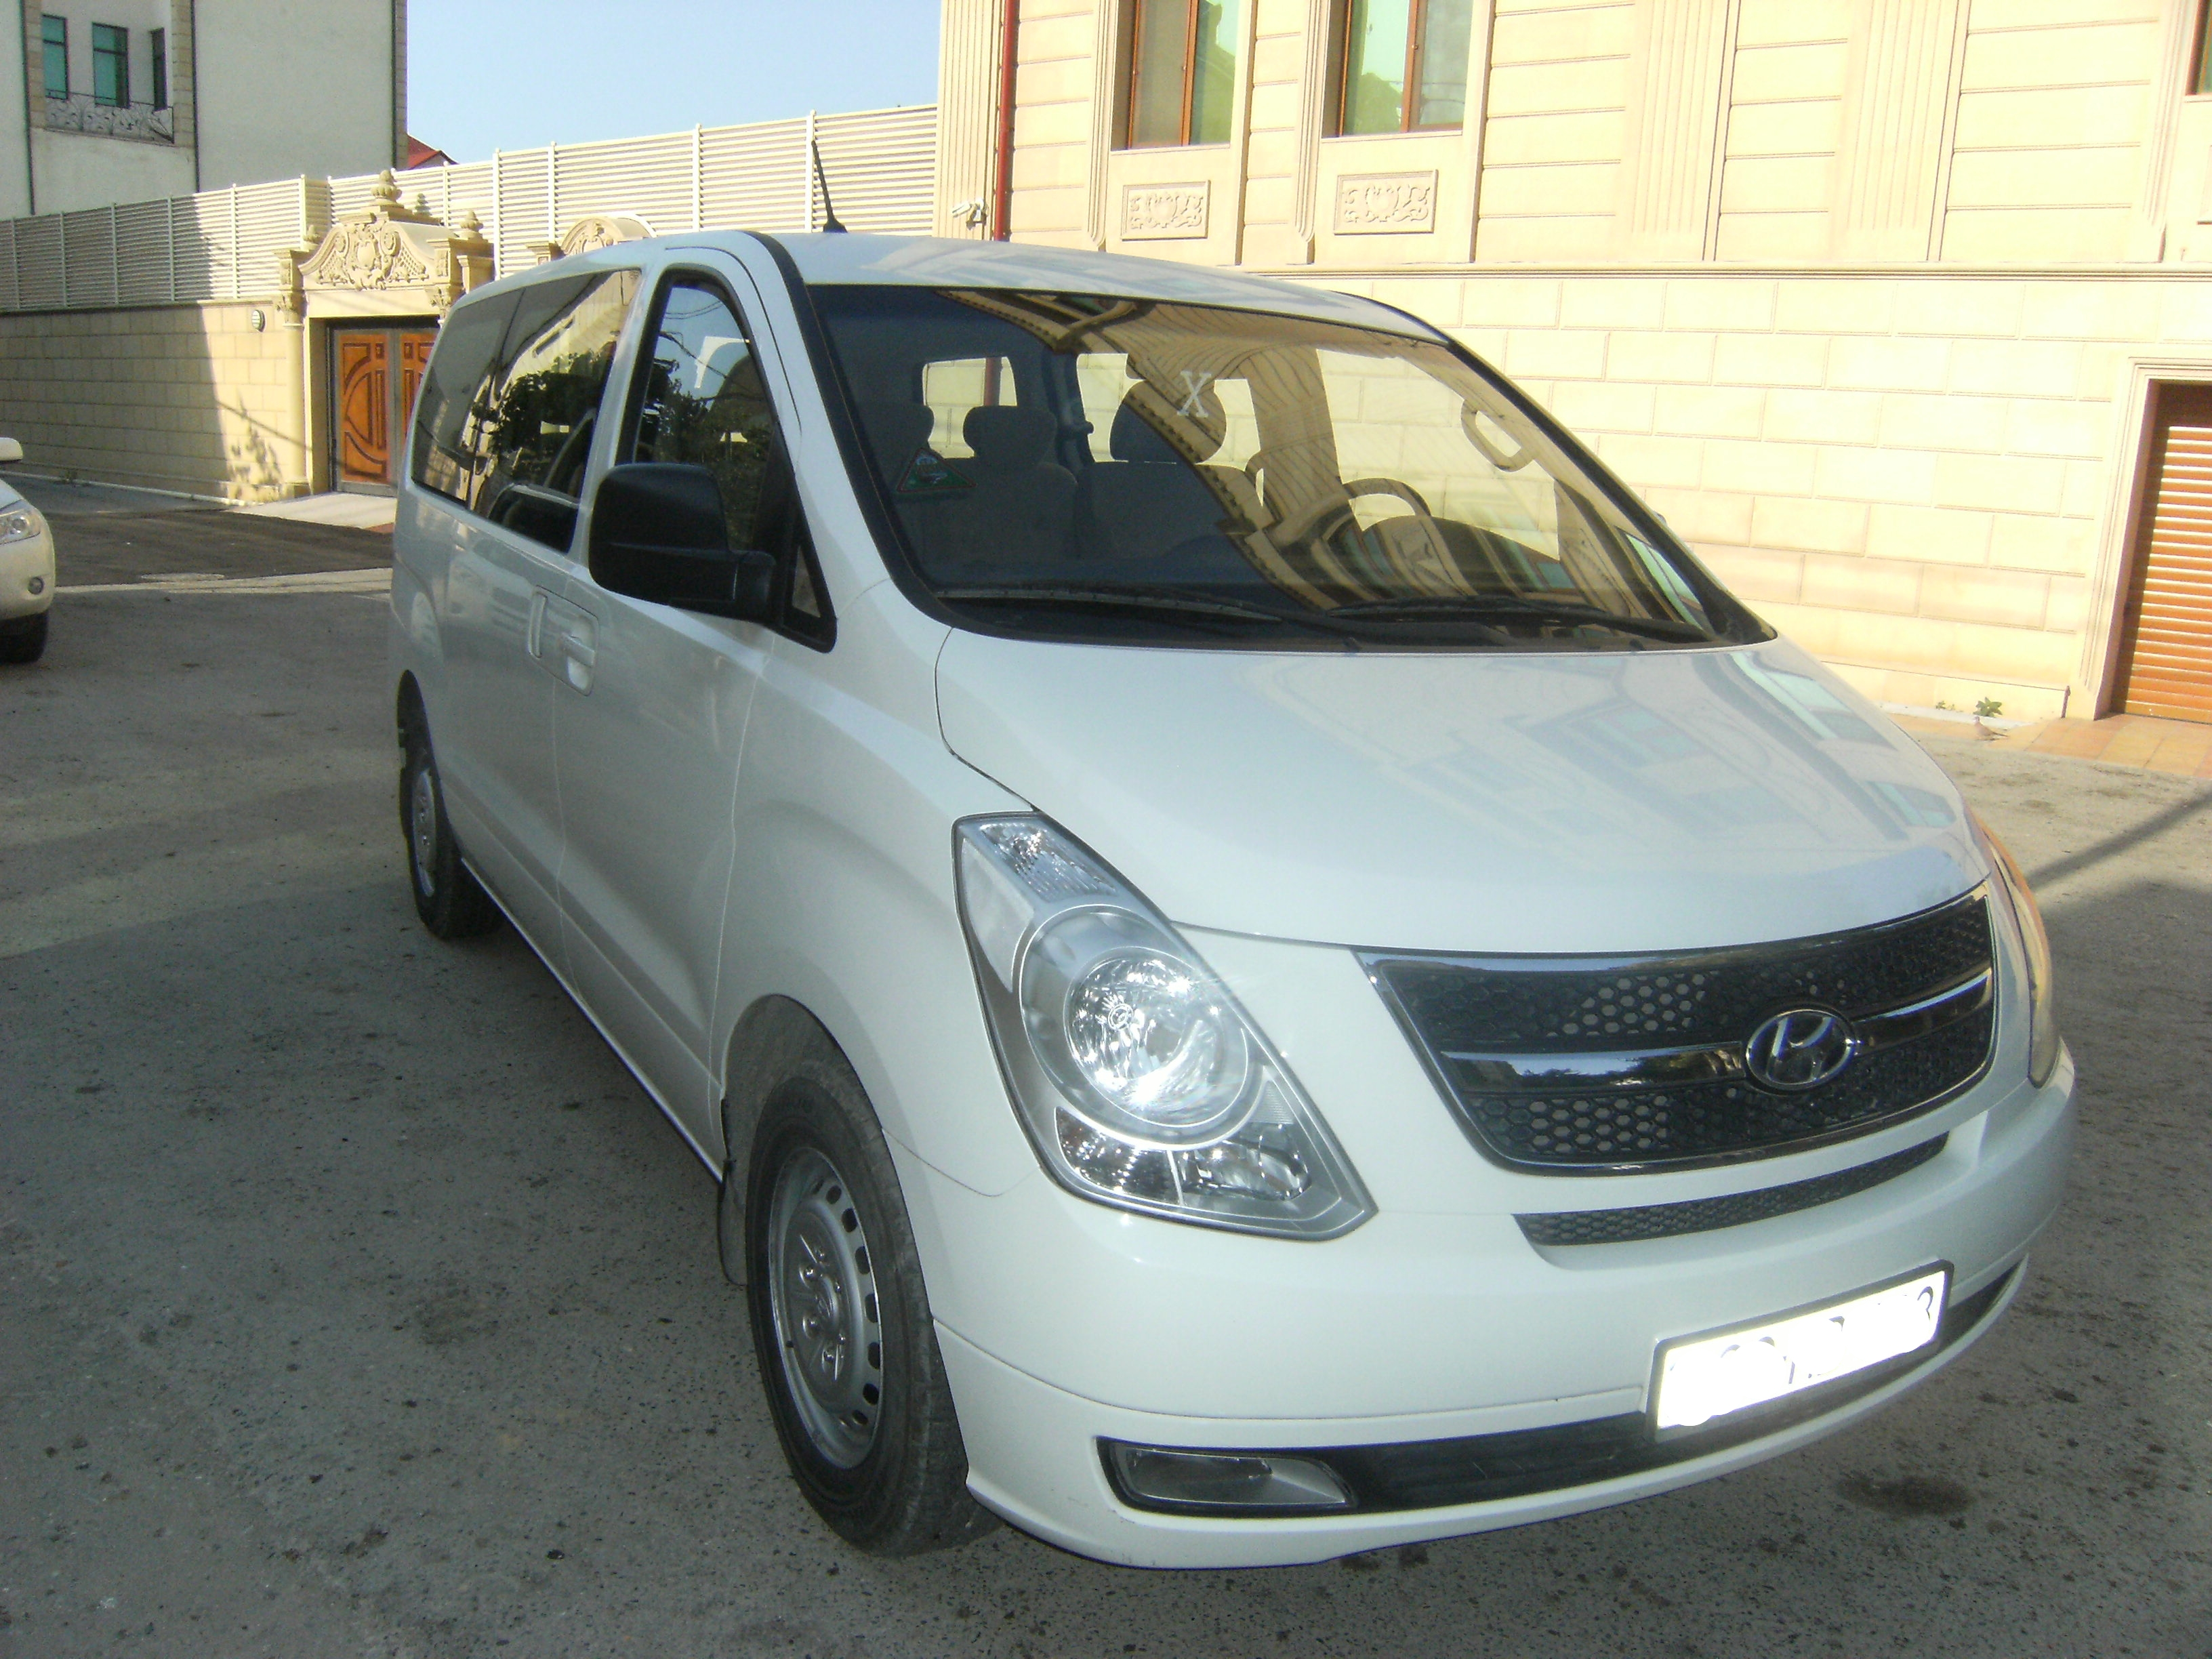 Baku airport transfer by mini-bus